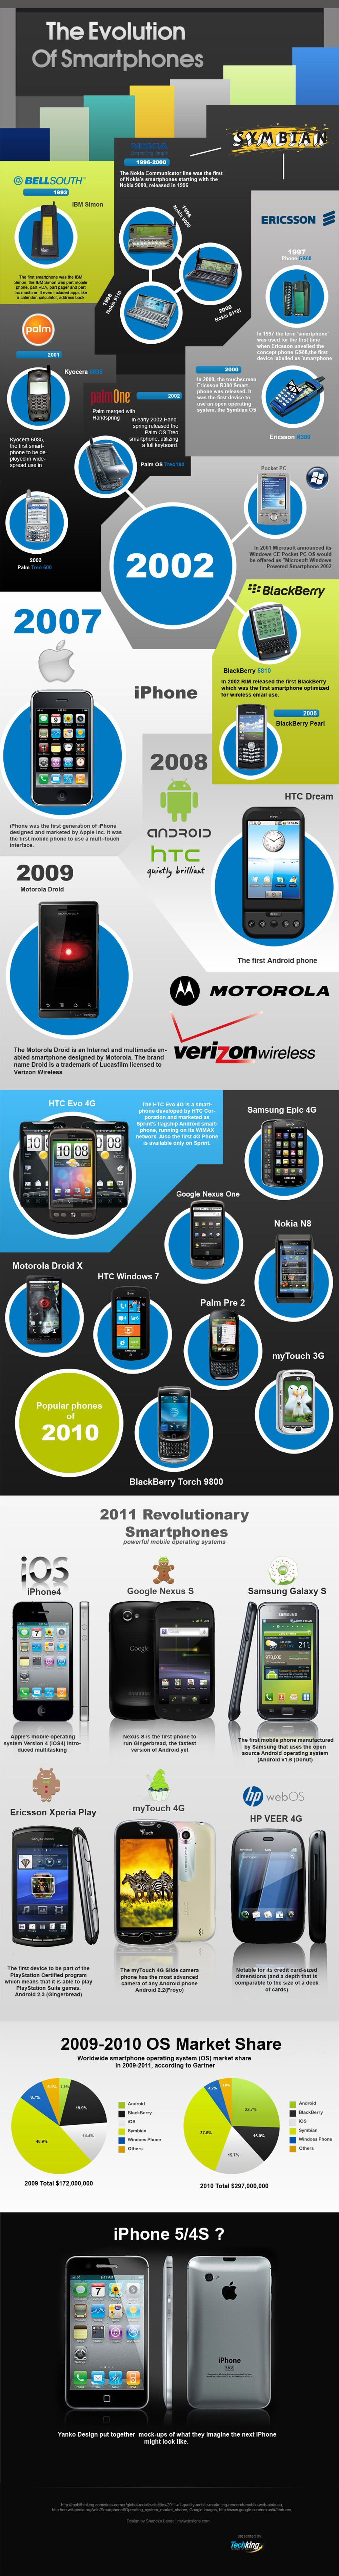 The Evolution Of Smartphones [Infographic] Infographic